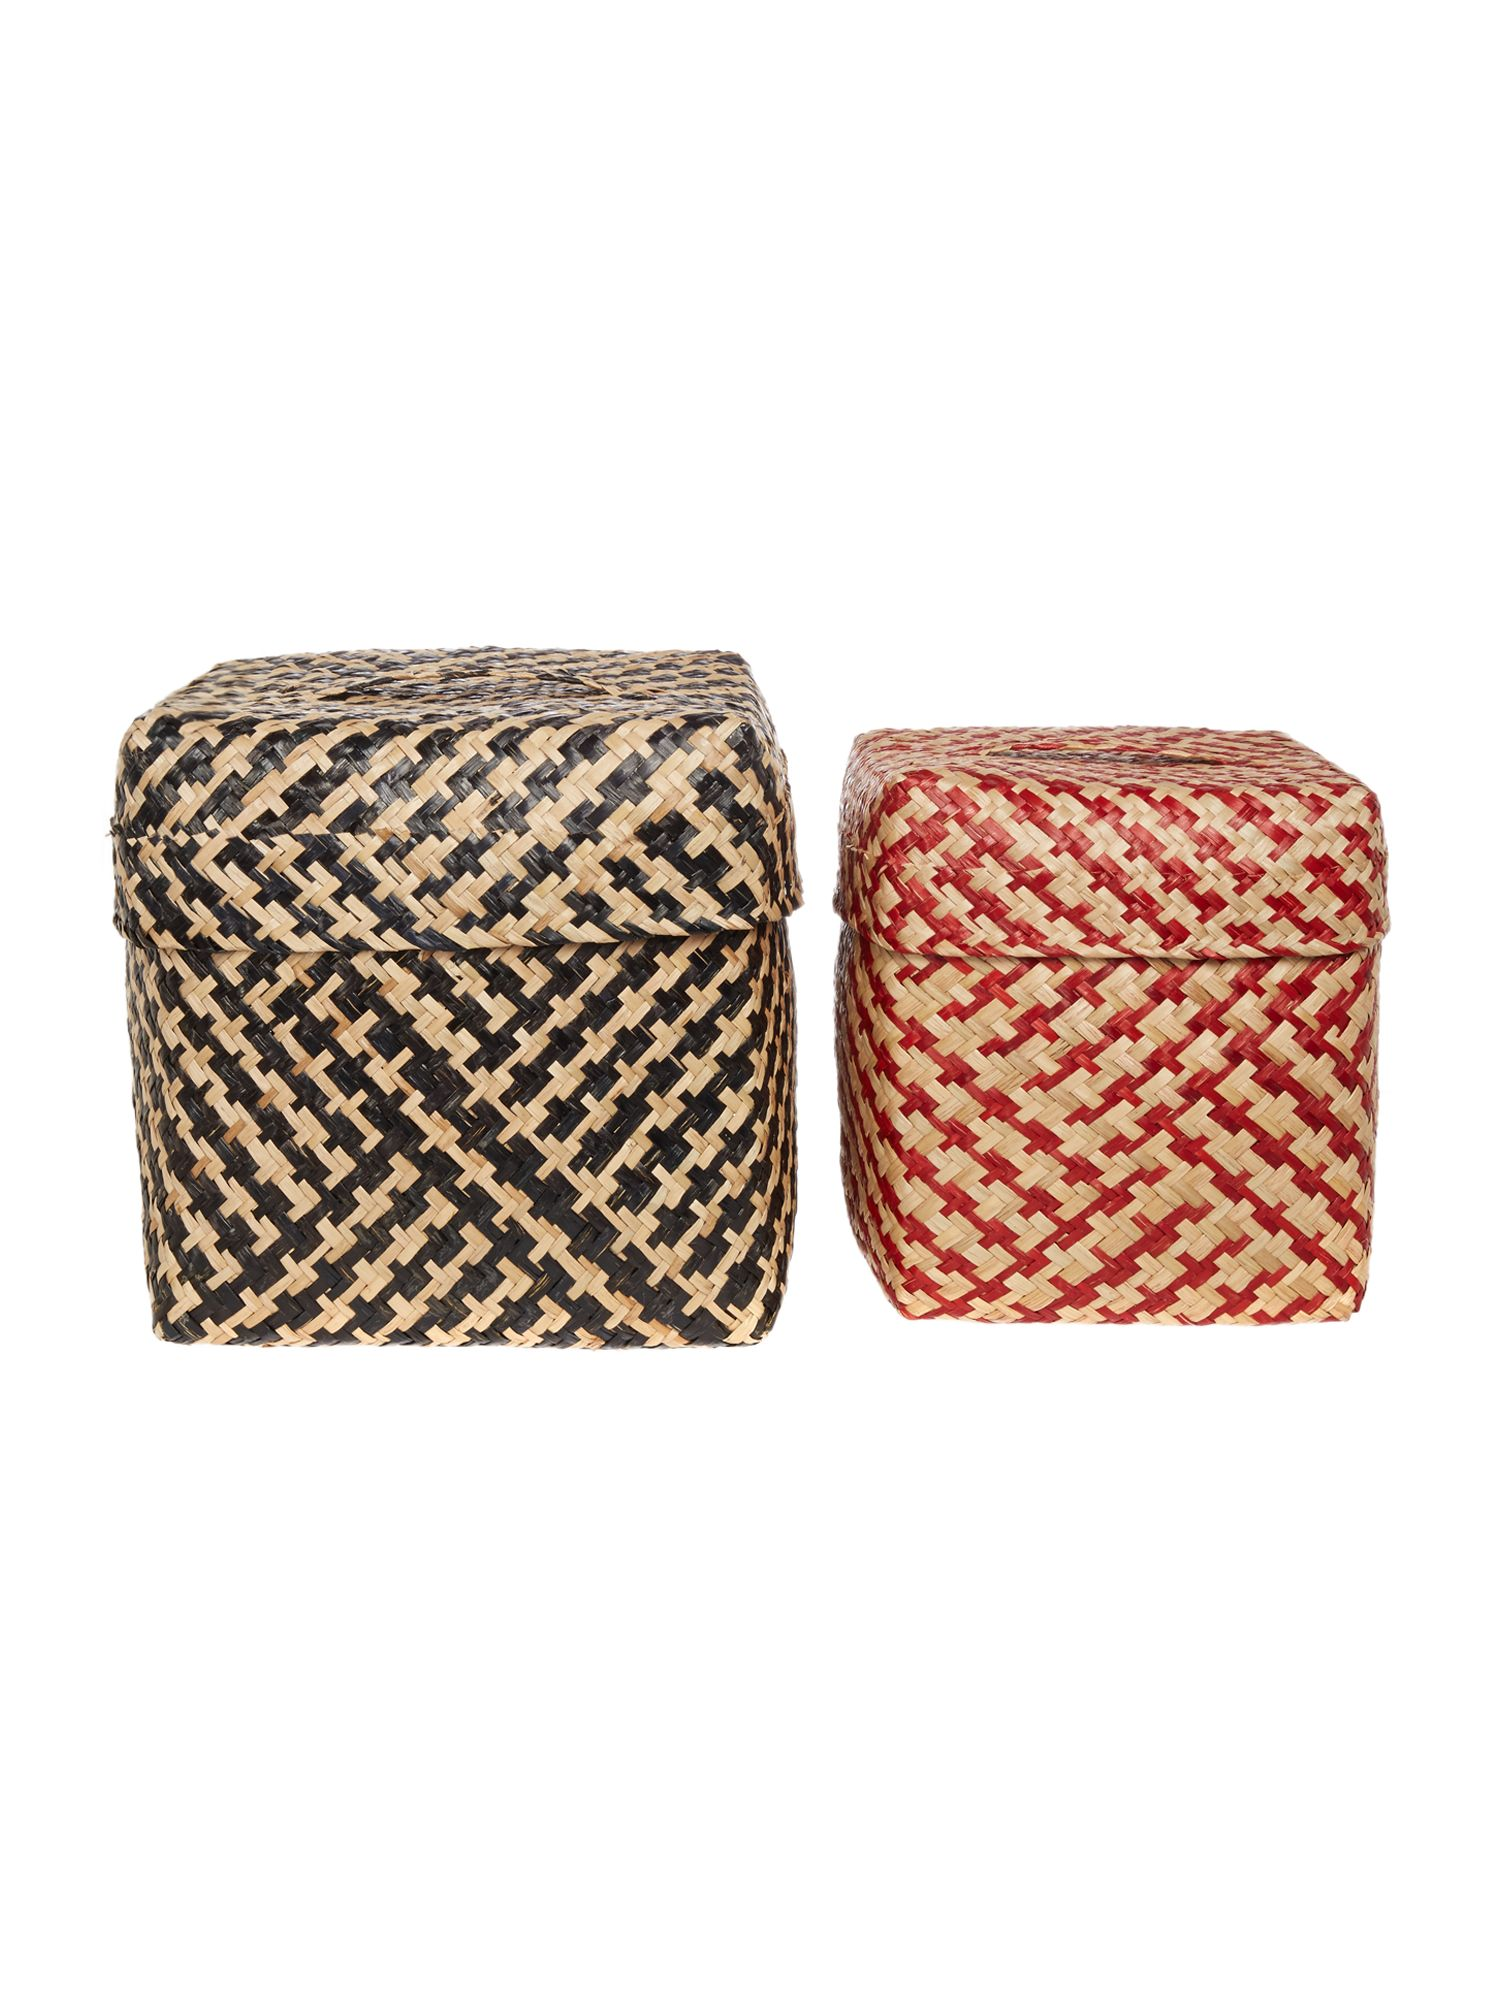 Linea Set of Two Square Woven Tubs